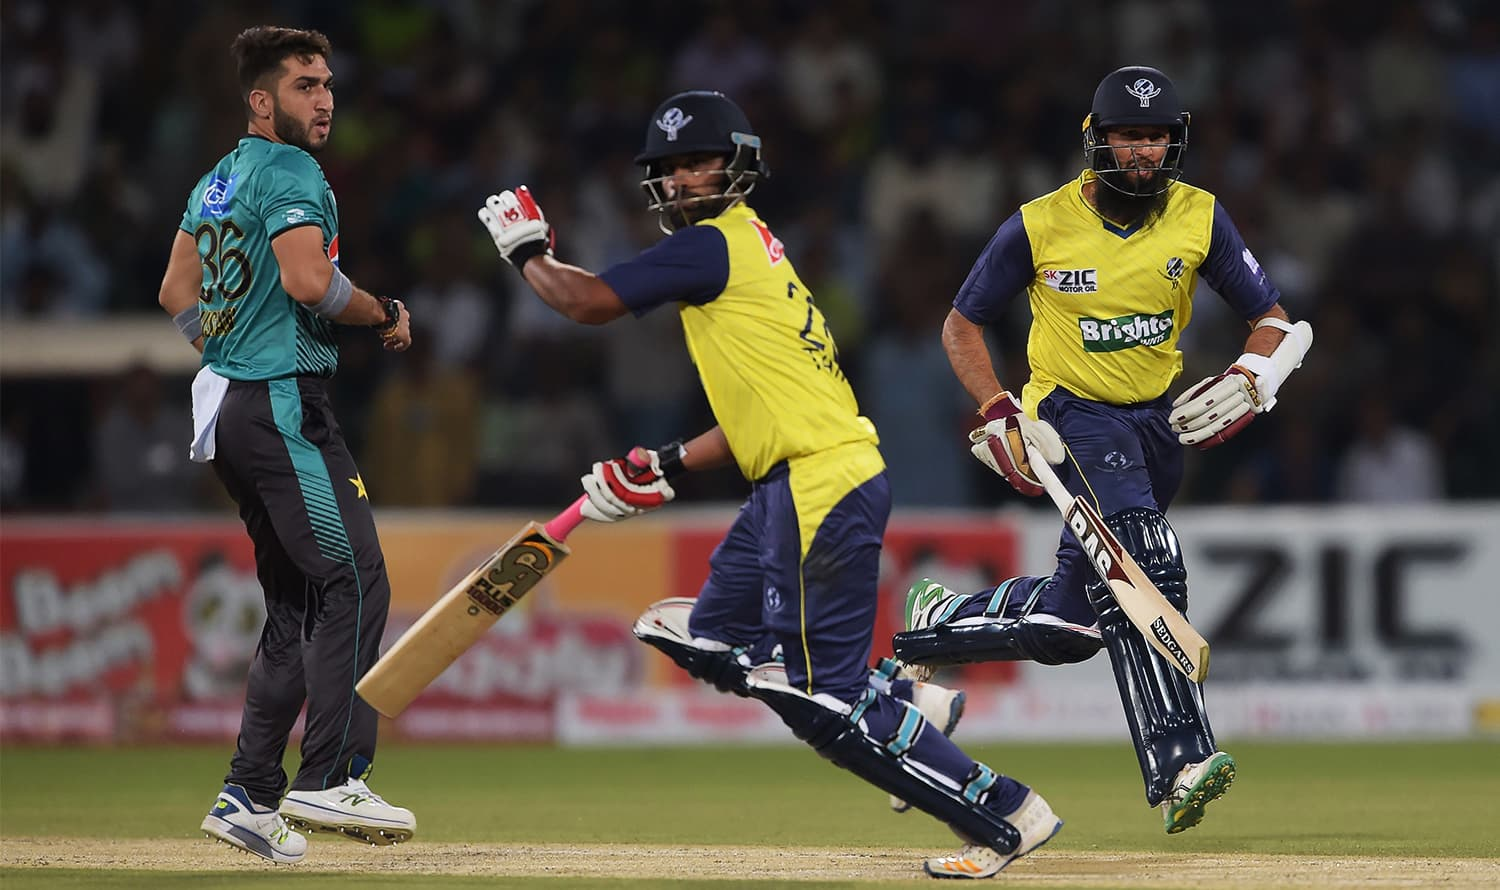 World XI batsmen Hashim Amla (R) and Tamim Iqbal (C) run between the wicket as bowler Usman Shinwari looks on. ─ AFP